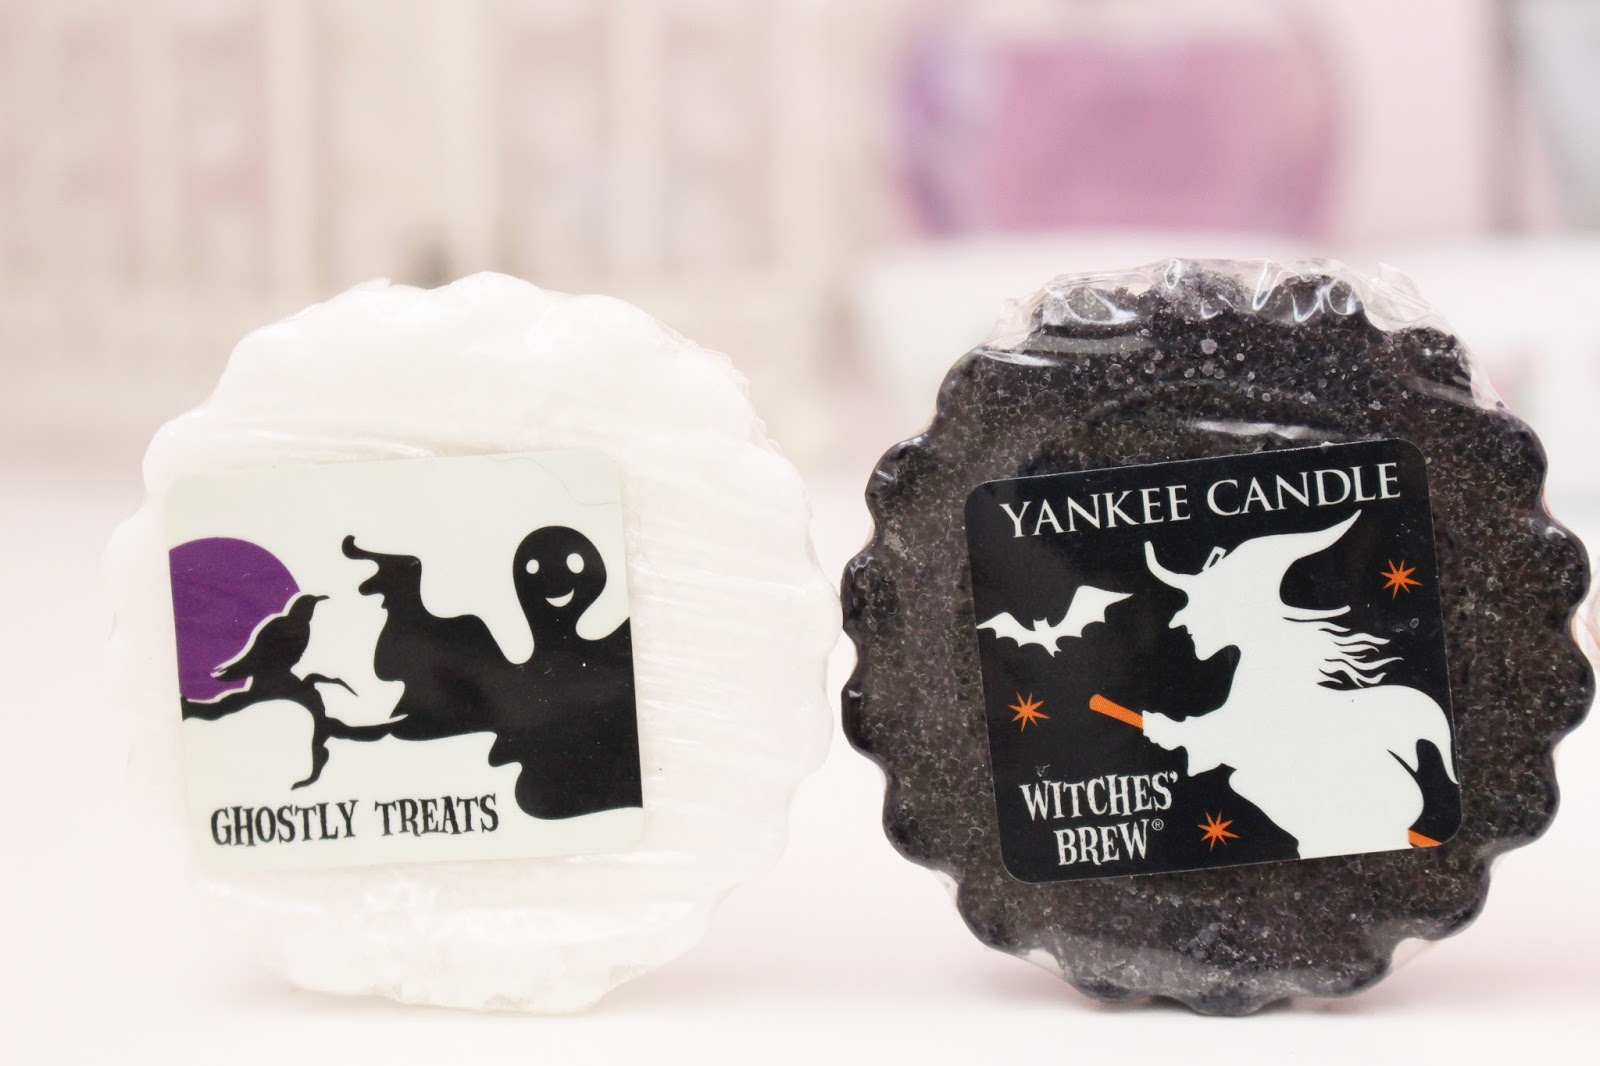 Yankee Candle Ghostly Treats and Witches Brew Review